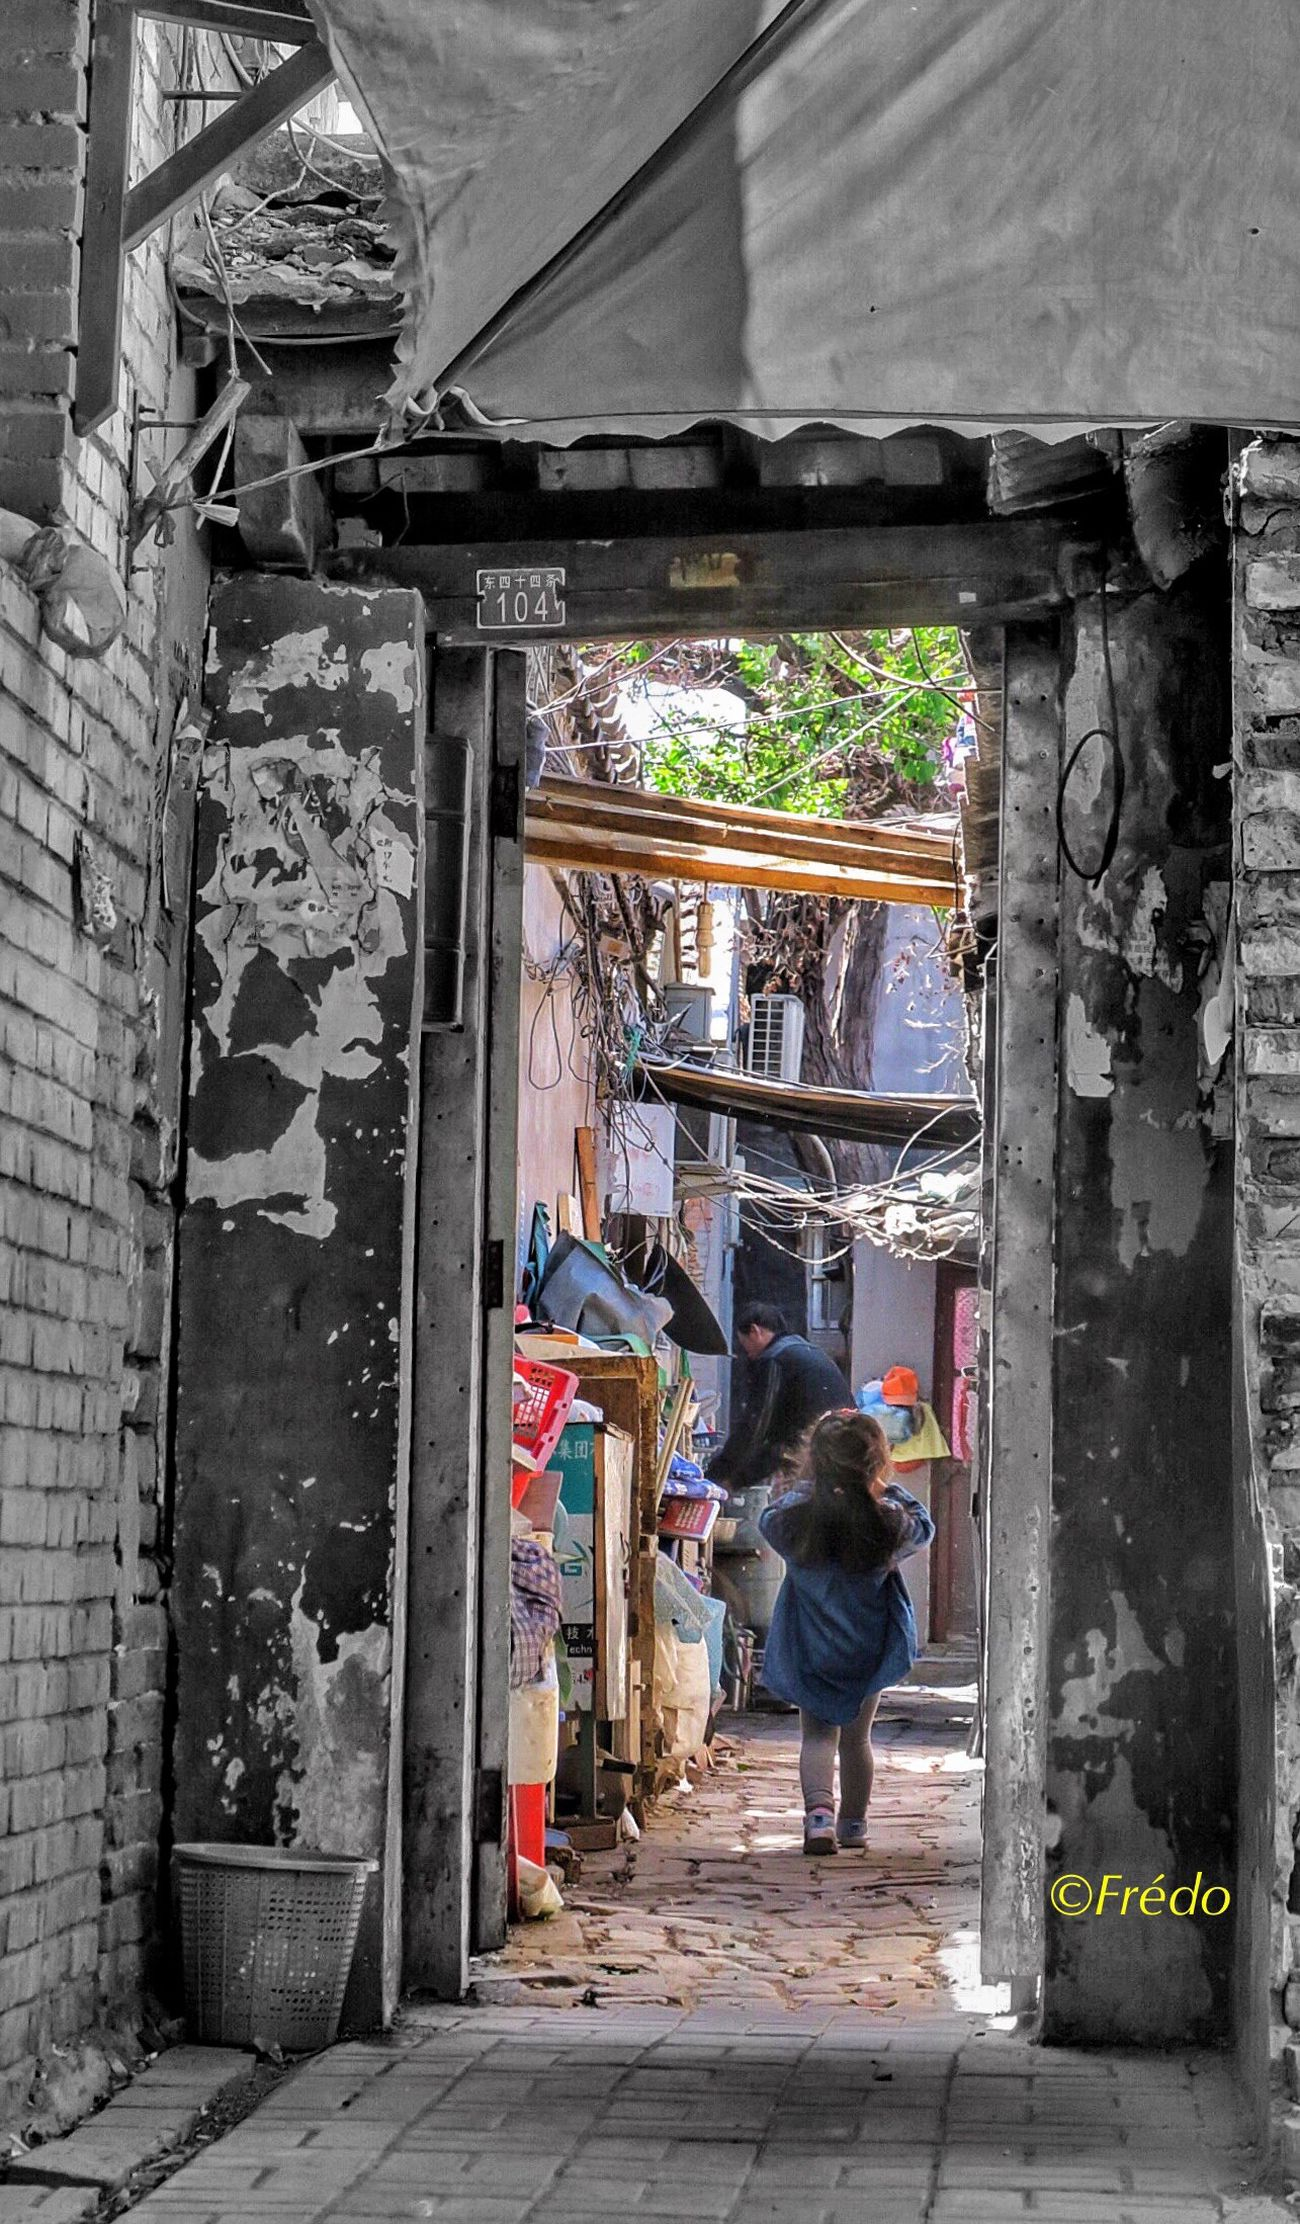 La petite fille du hutong One Person Built Structure Architecture Day Hutong Street Hutong Life Hutong Old Town Old Buildings Street Photo Photooftheday Street Beijing BEIJING北京CHINA中国BEAUTY Eyeemphotography Street Photos😄📷🏫⛪🚒🚐🚲⚠ Eyem Gallery EyeEm Best Shots BEIJING 北京 Rear View Eye4photography Colorful Photo Beijing Scenes Back From School Kid Girl